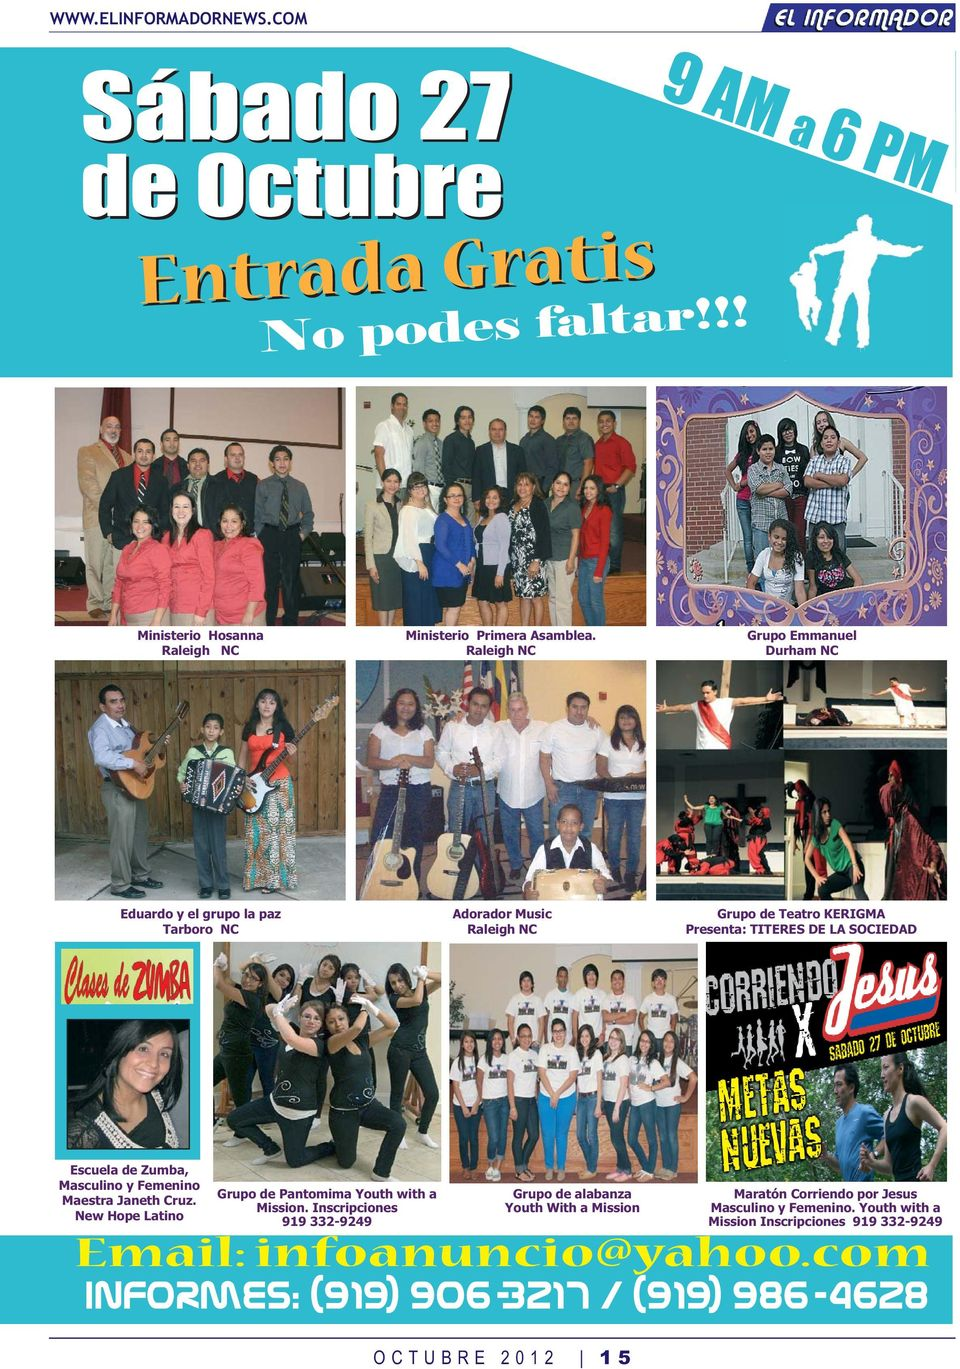 Escuela de Zumba, Masculino y Femenino Maestra Janeth Cruz. New Hope Latino Grupo de Pantomima Youth with a Mission.